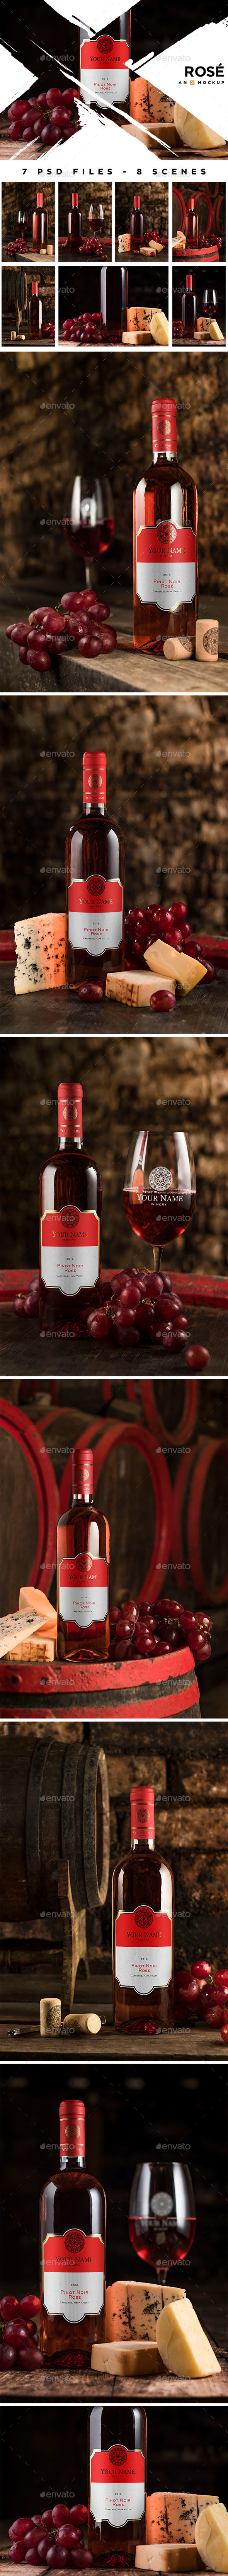 Cellar Wine Mockup - Rose Wine - Product Mock-Ups Graphics